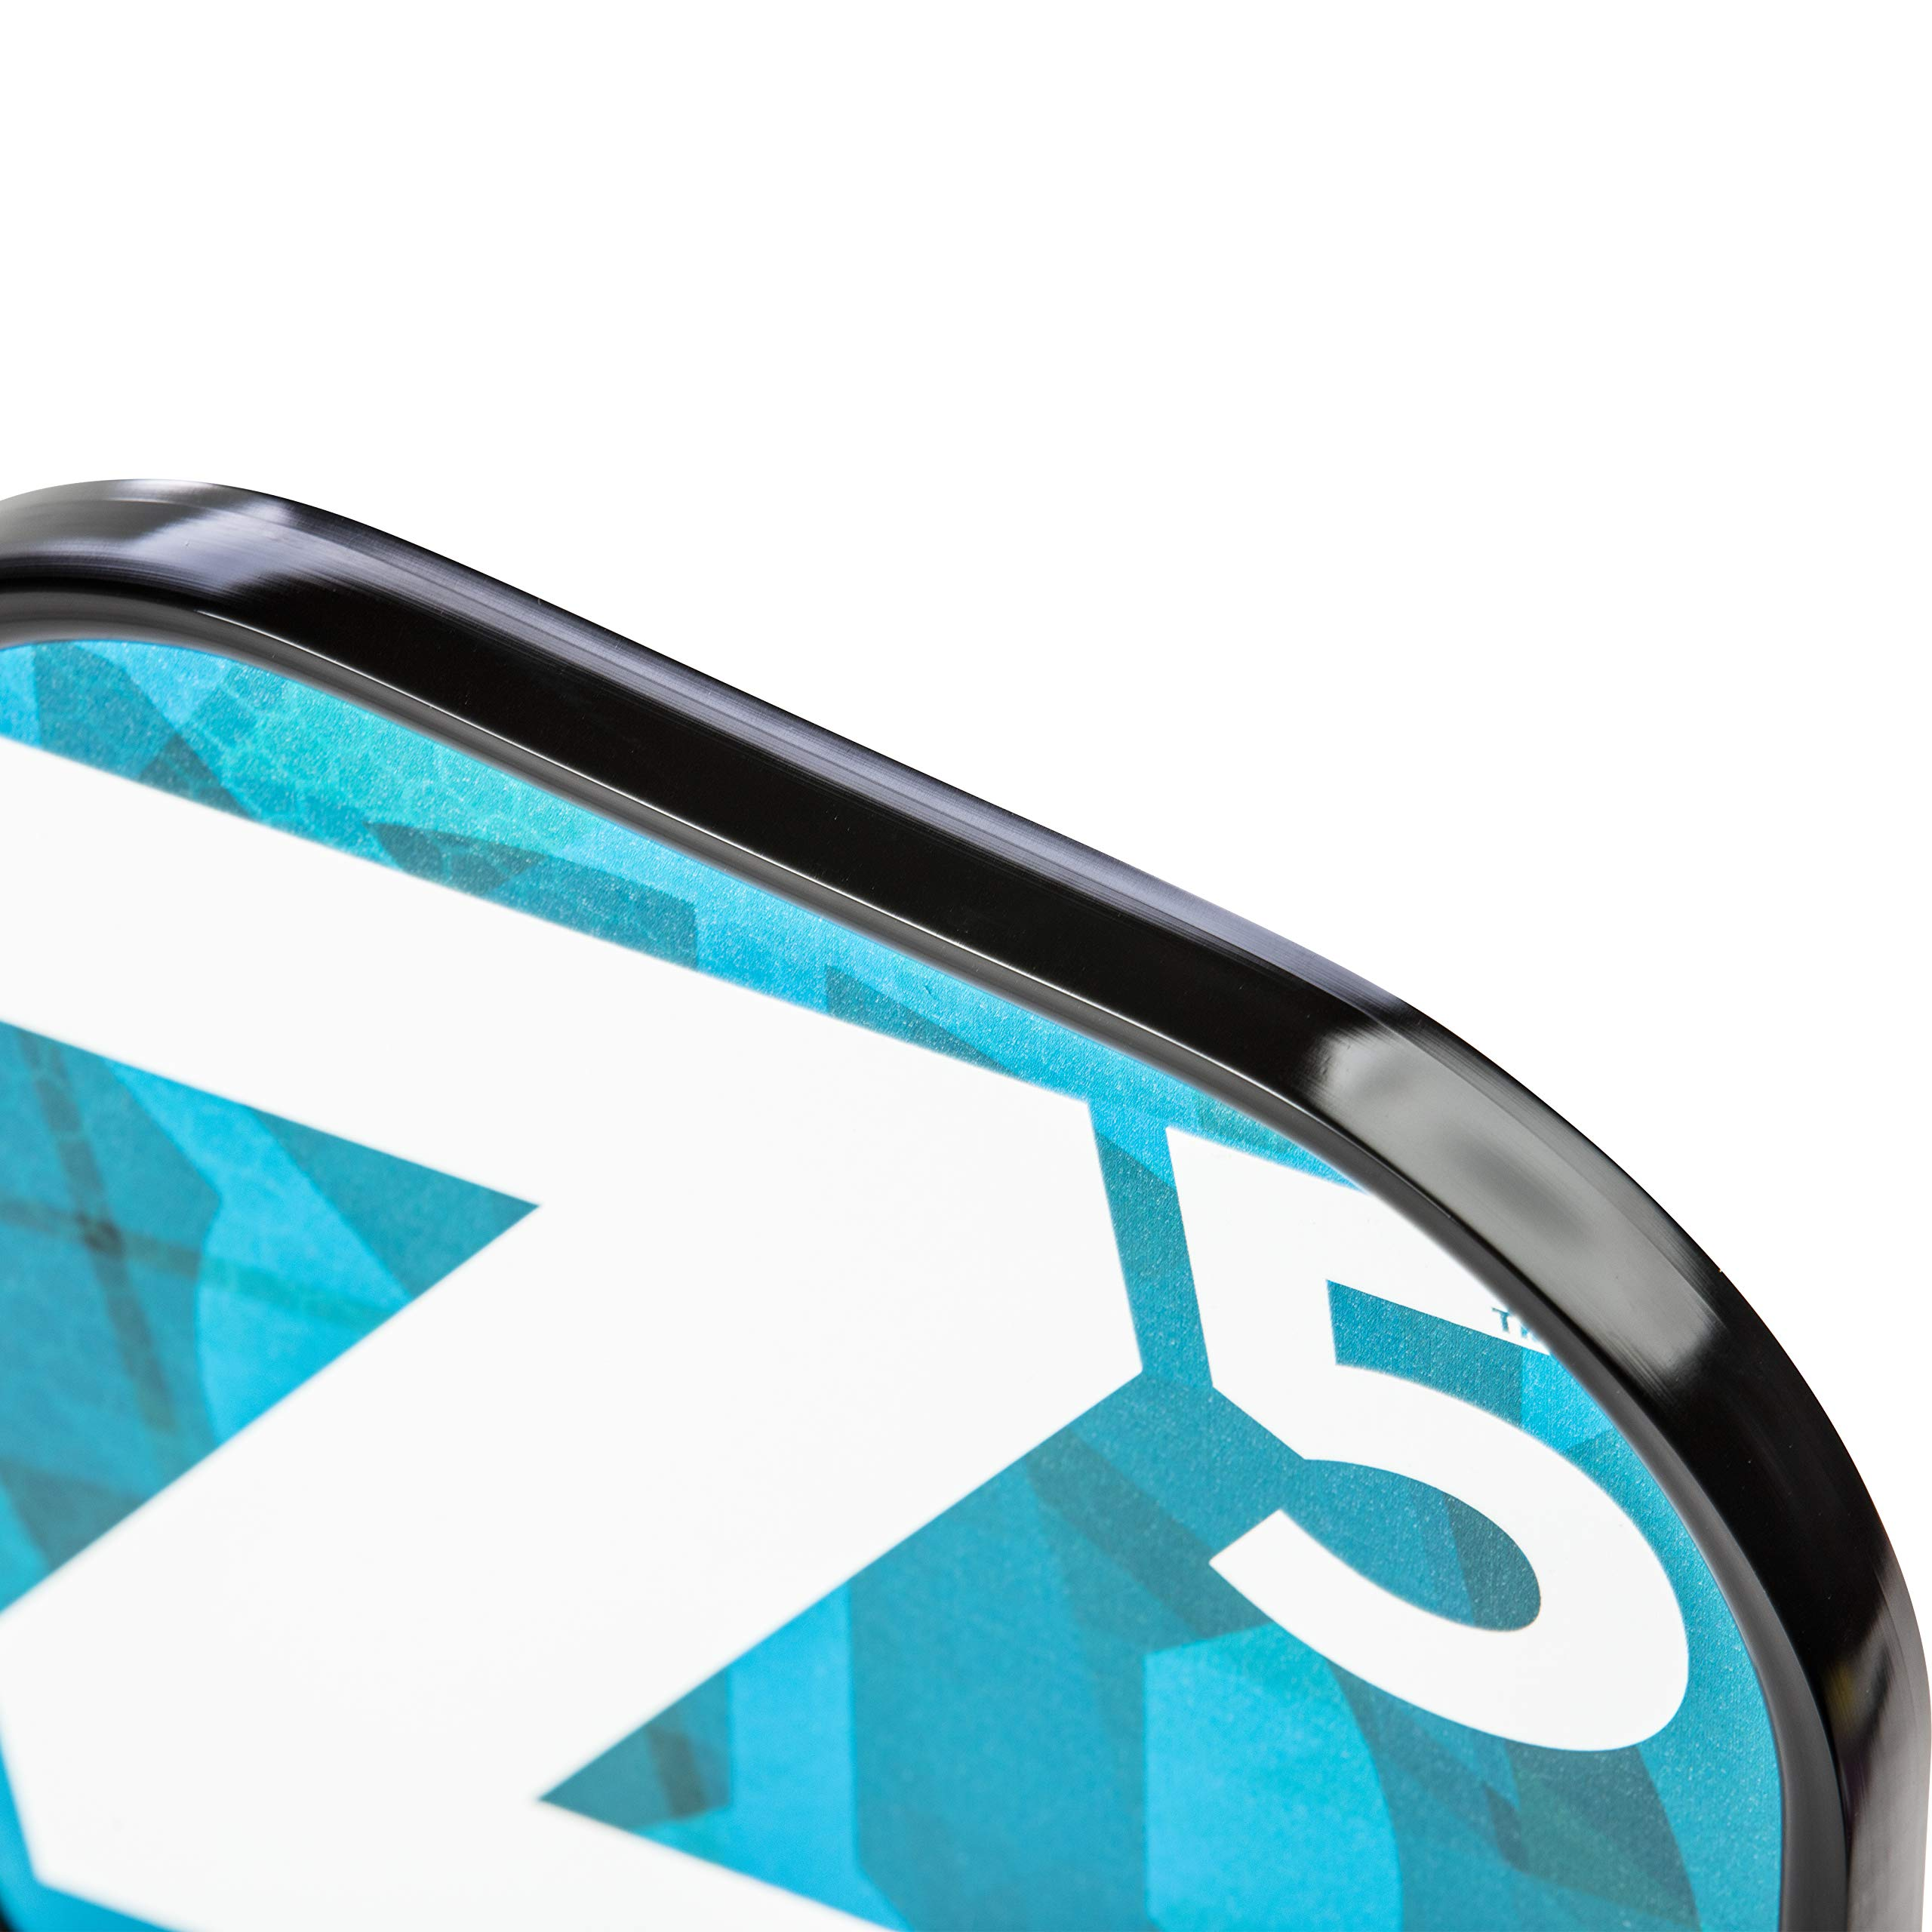 Onix Z5 Graphite Pickleball Paddle and Paddle Cover (Mod Blue) | Gift Pack by Onix (Image #4)